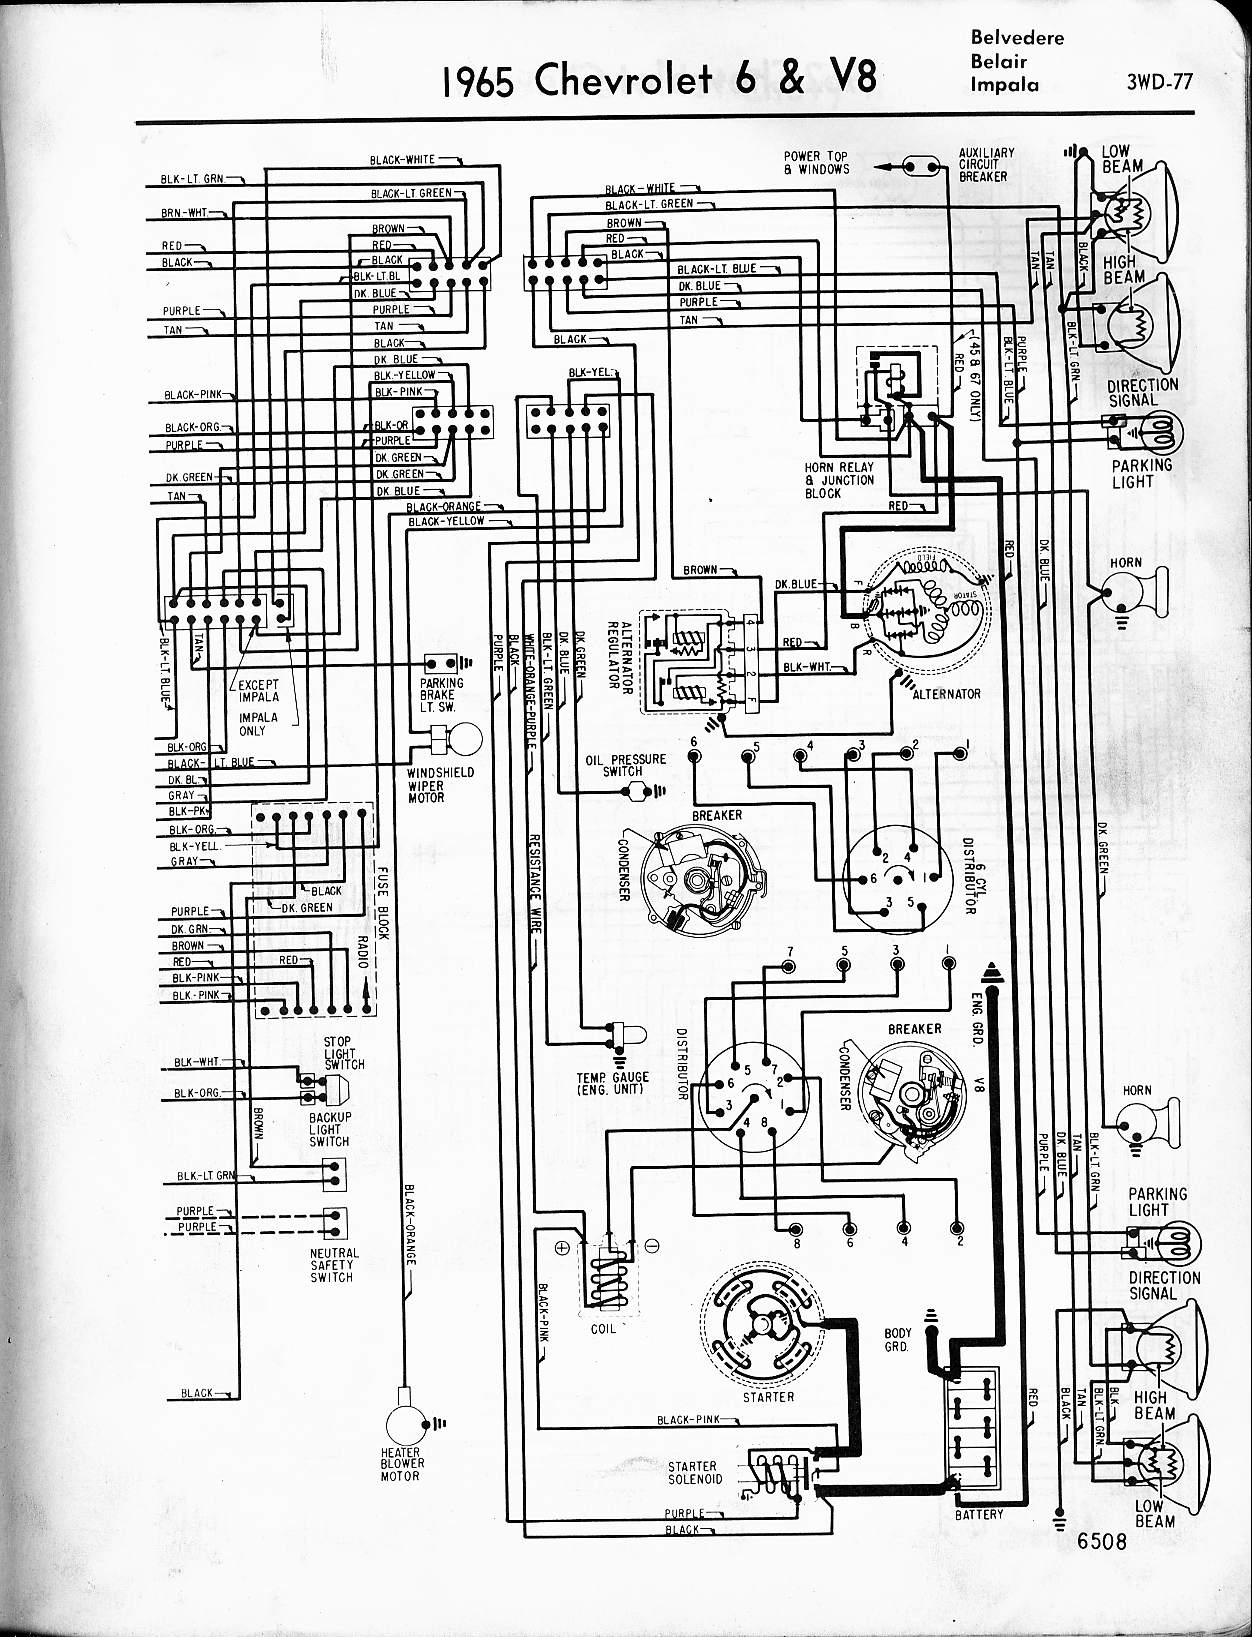 [SCHEMATICS_48IS]  06C5AD 1966 Jeep Wagoneer Alternator Wiring | Wiring Library | 1966 Cadillac Alternator Wiring Diagram |  | Wiring Library